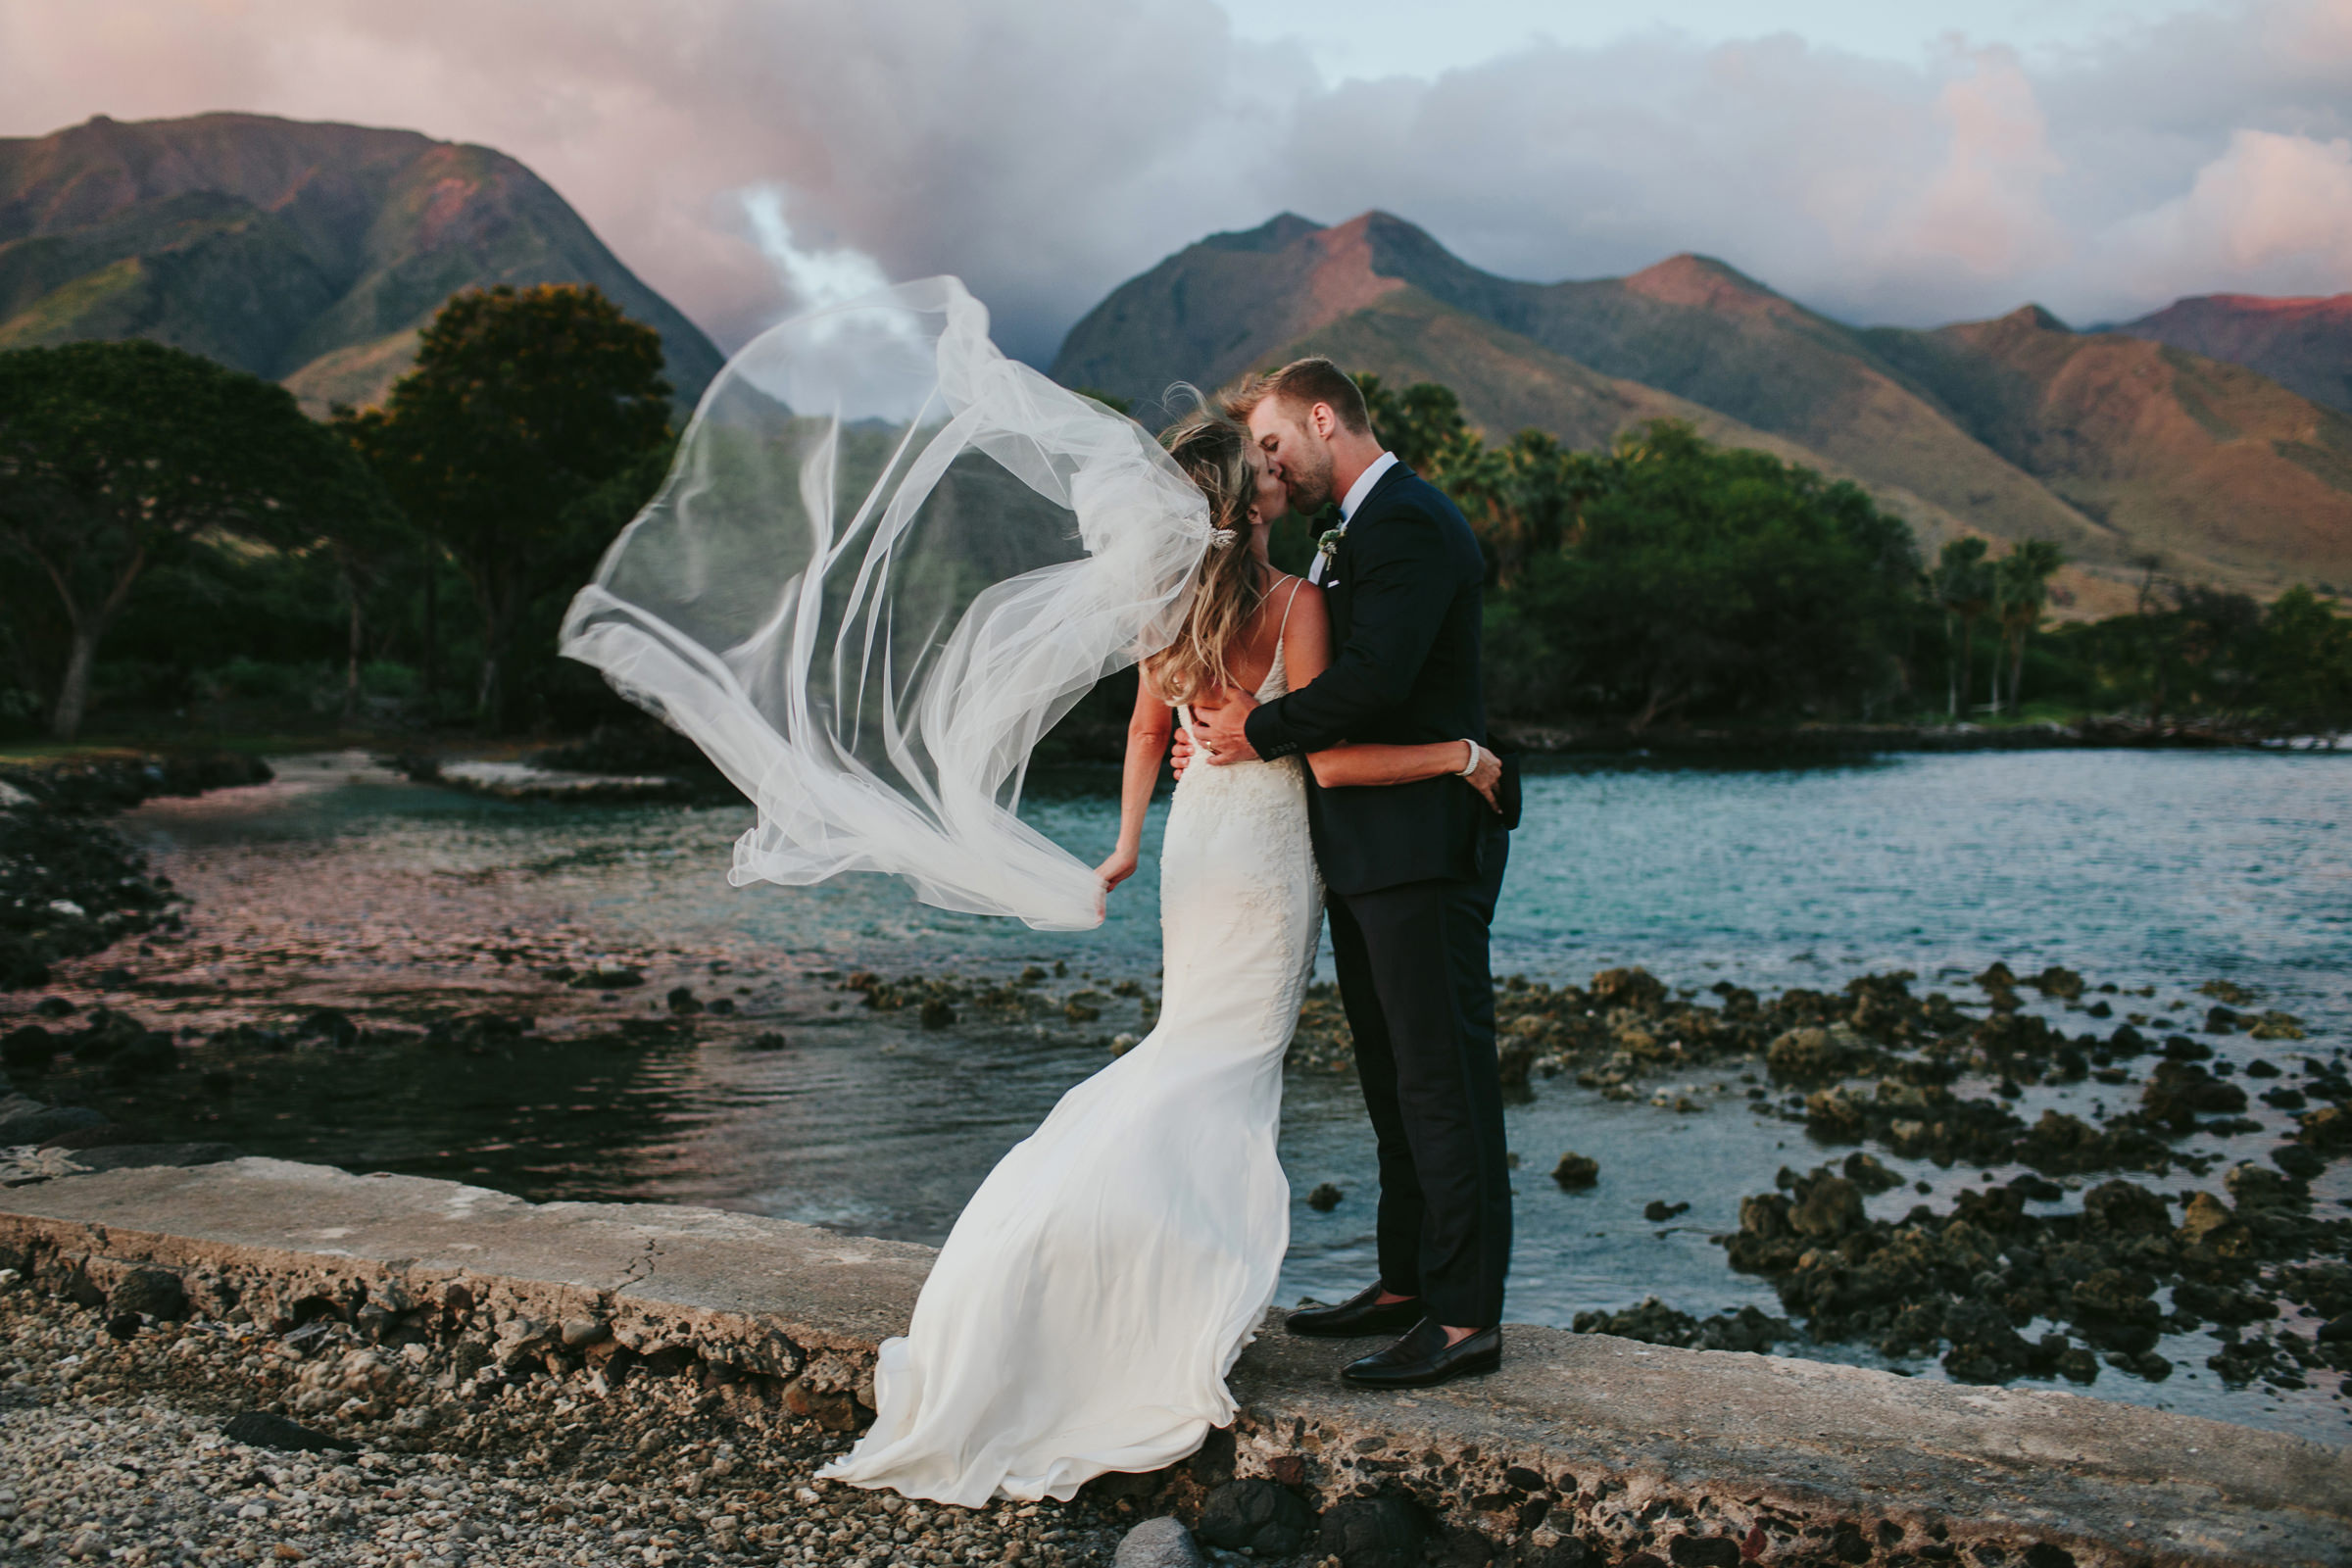 Maui beachfront photo of couple embracing with veil blowing - photo by Melia Lucida